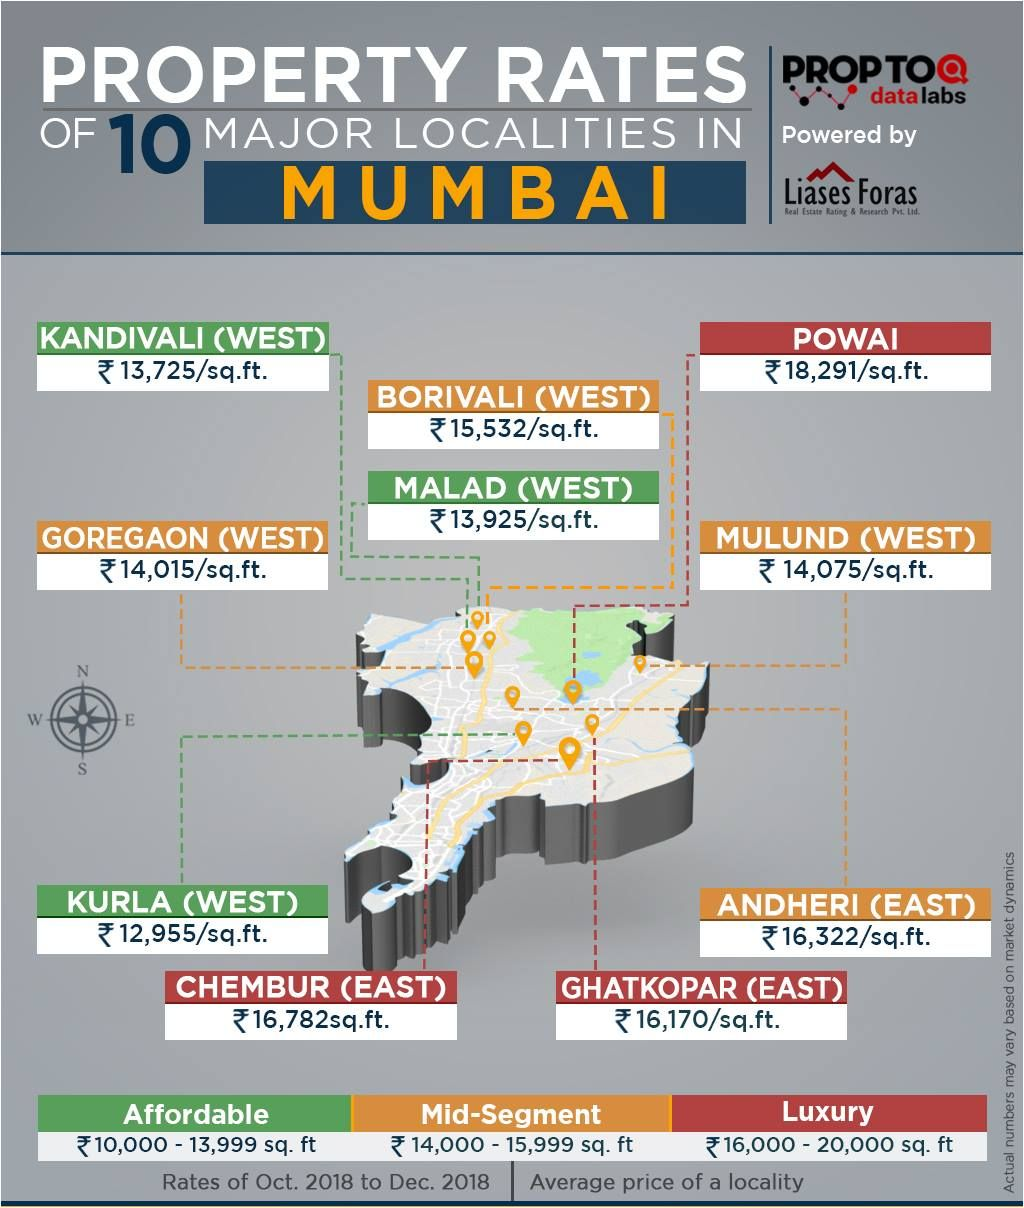 Mumbai being the financial capital of India attracts many